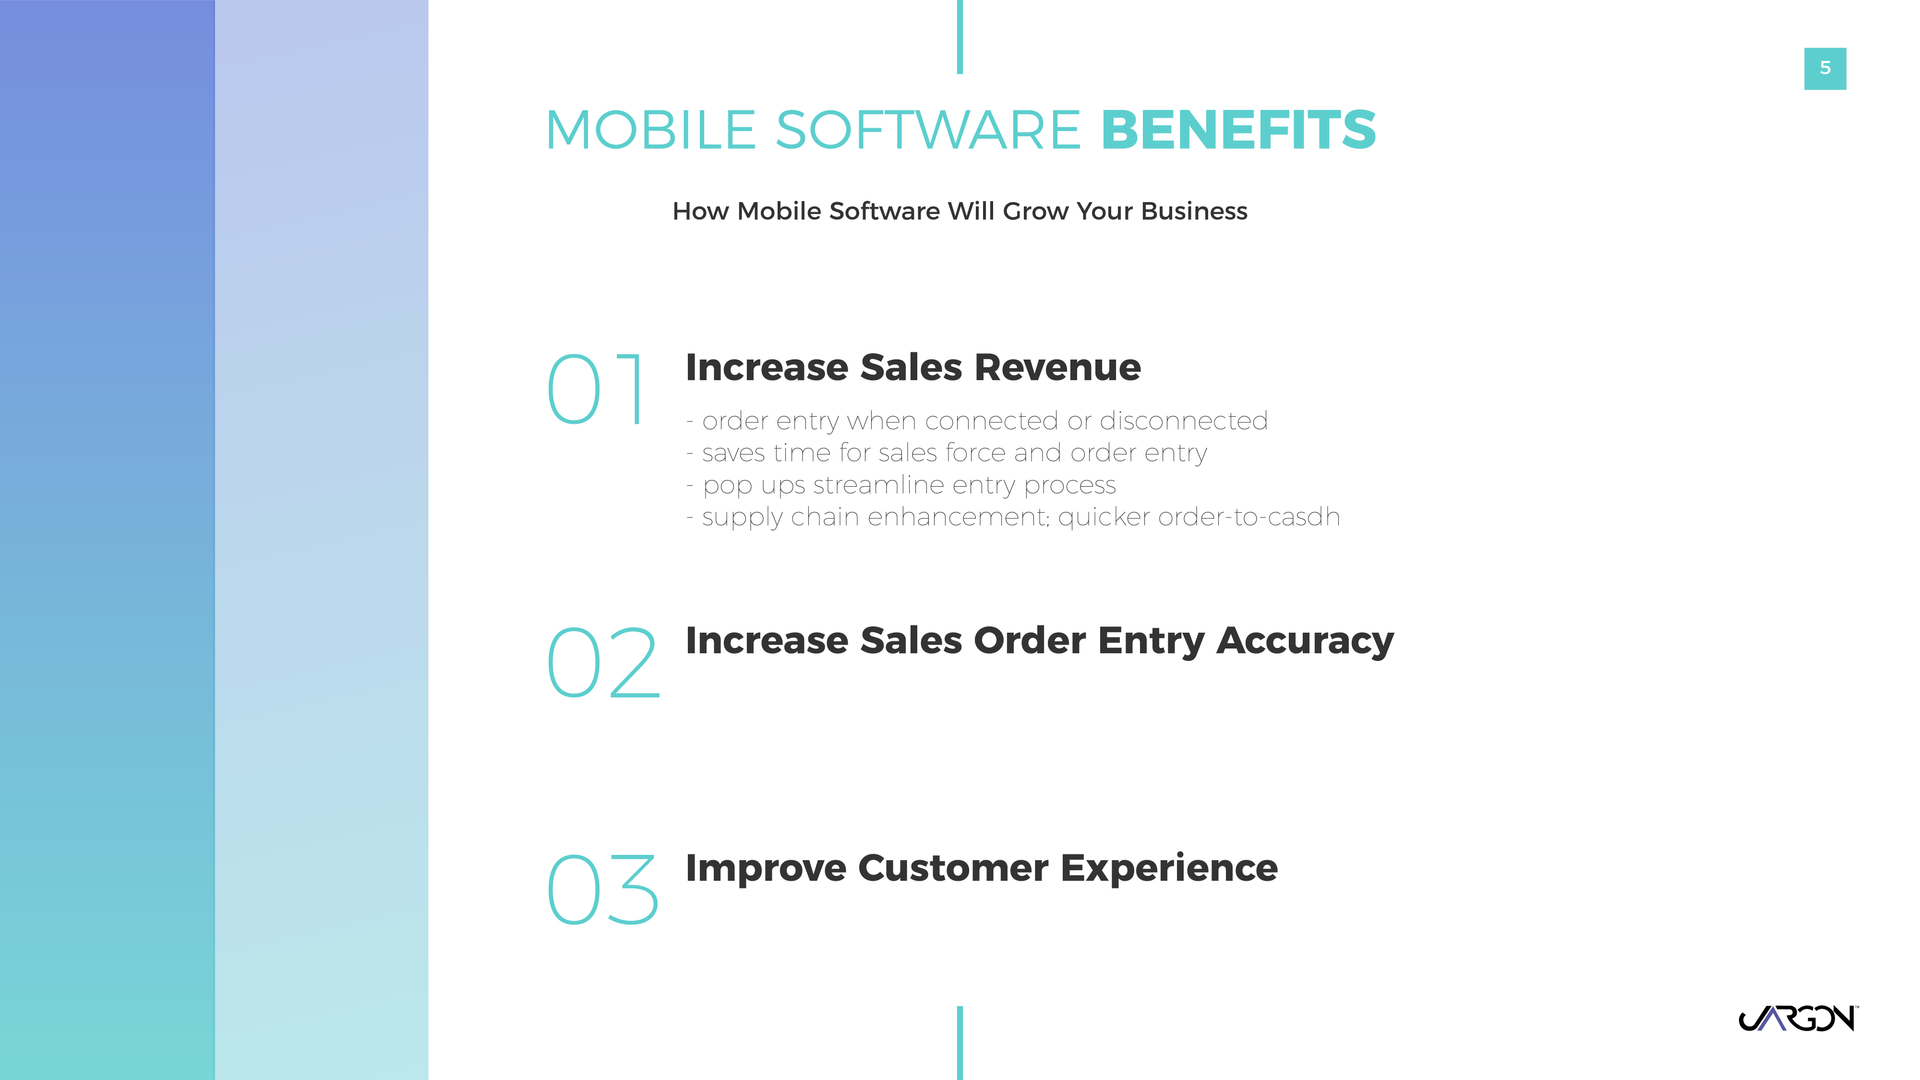 Mobile Software Benefits